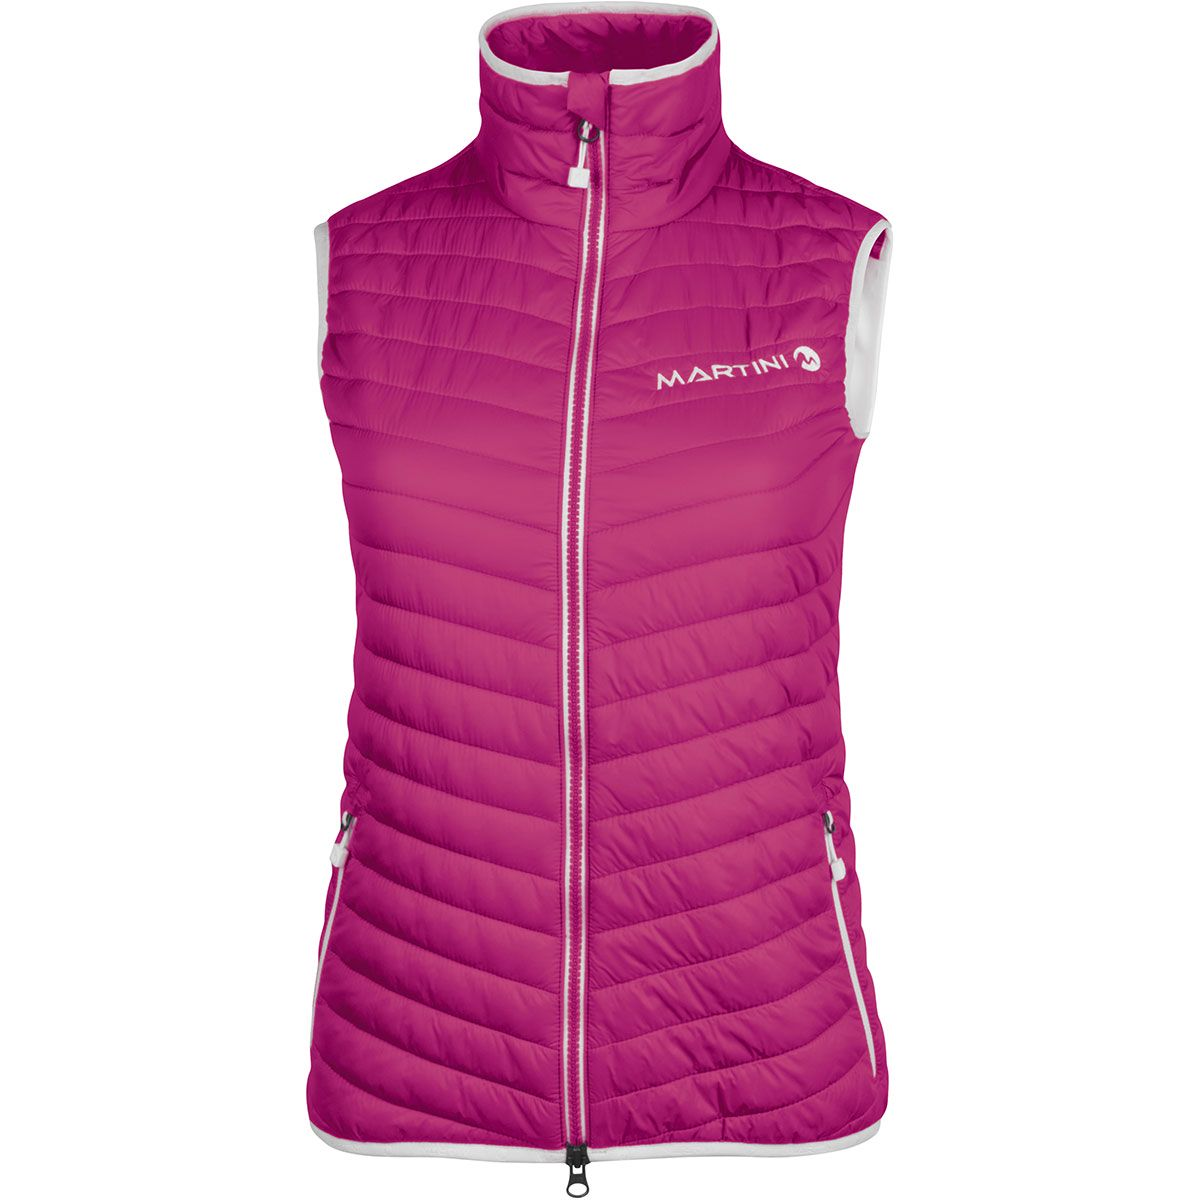 Martini Damen Emotion Weste (Größe XS, Pink) | Isolationswesten > Damen